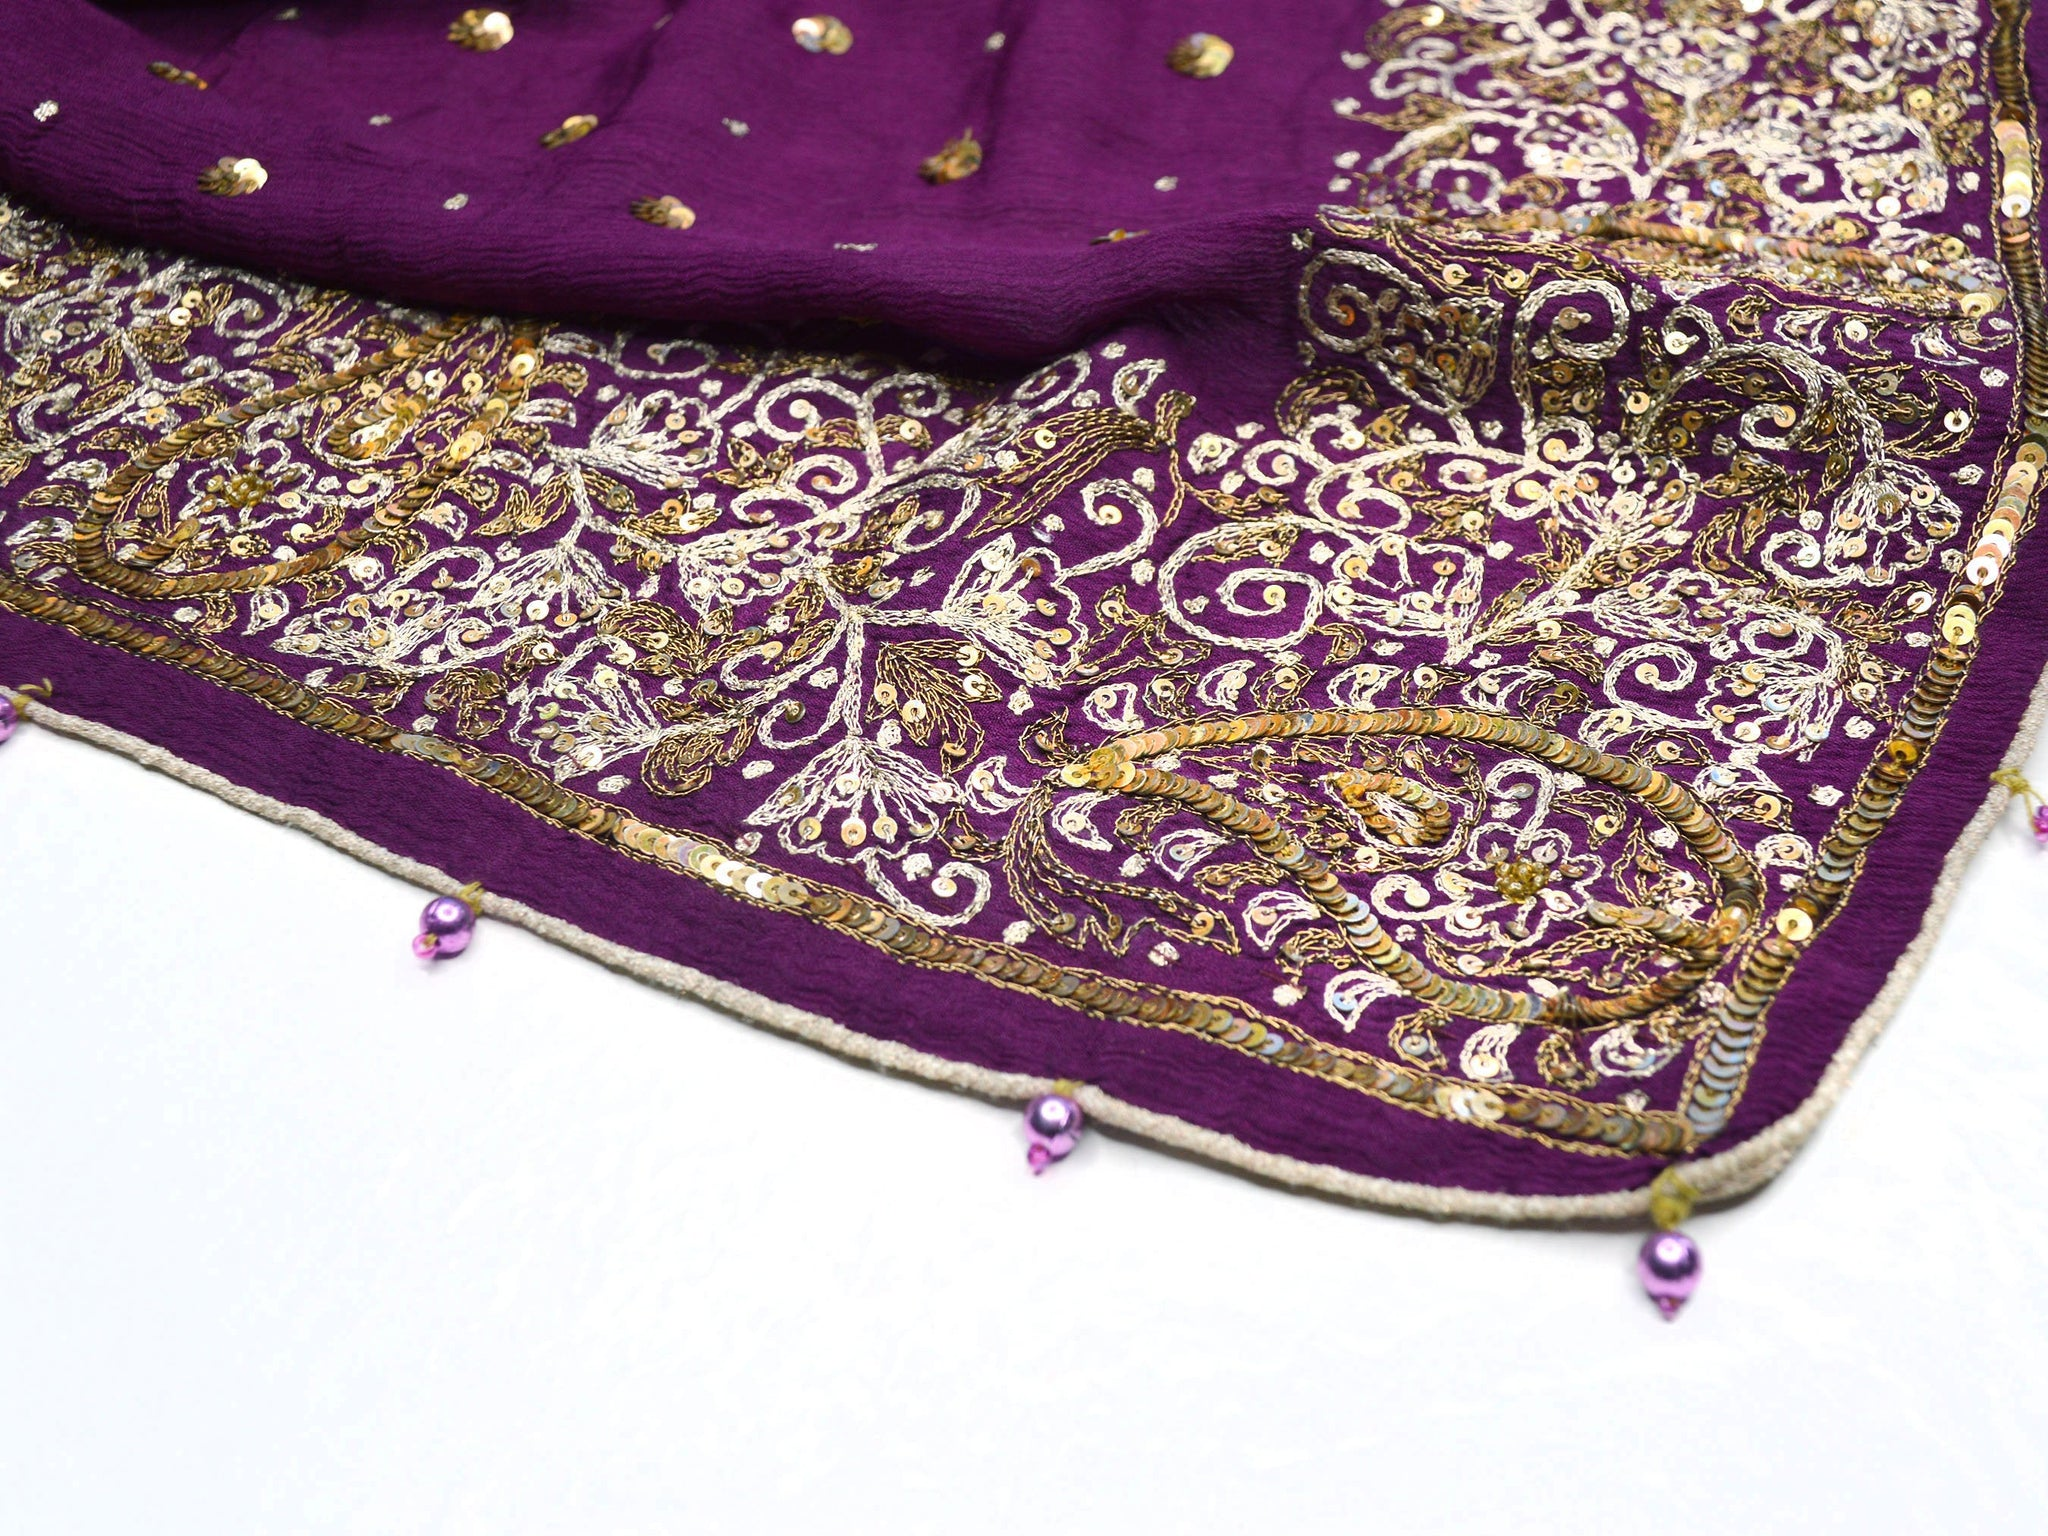 Purple seqin bohemian indian wedding shawl